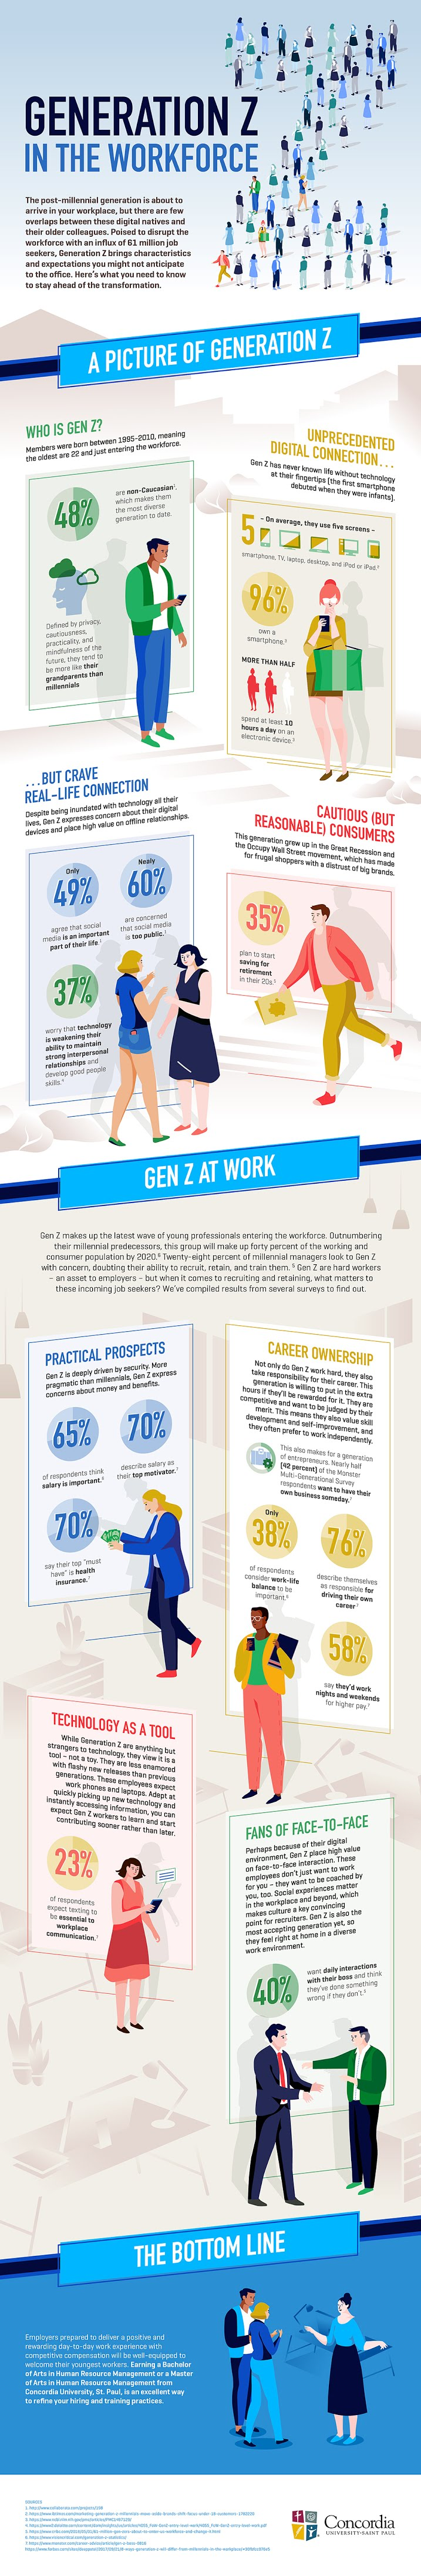 Generation Z in the Workforce #infographic